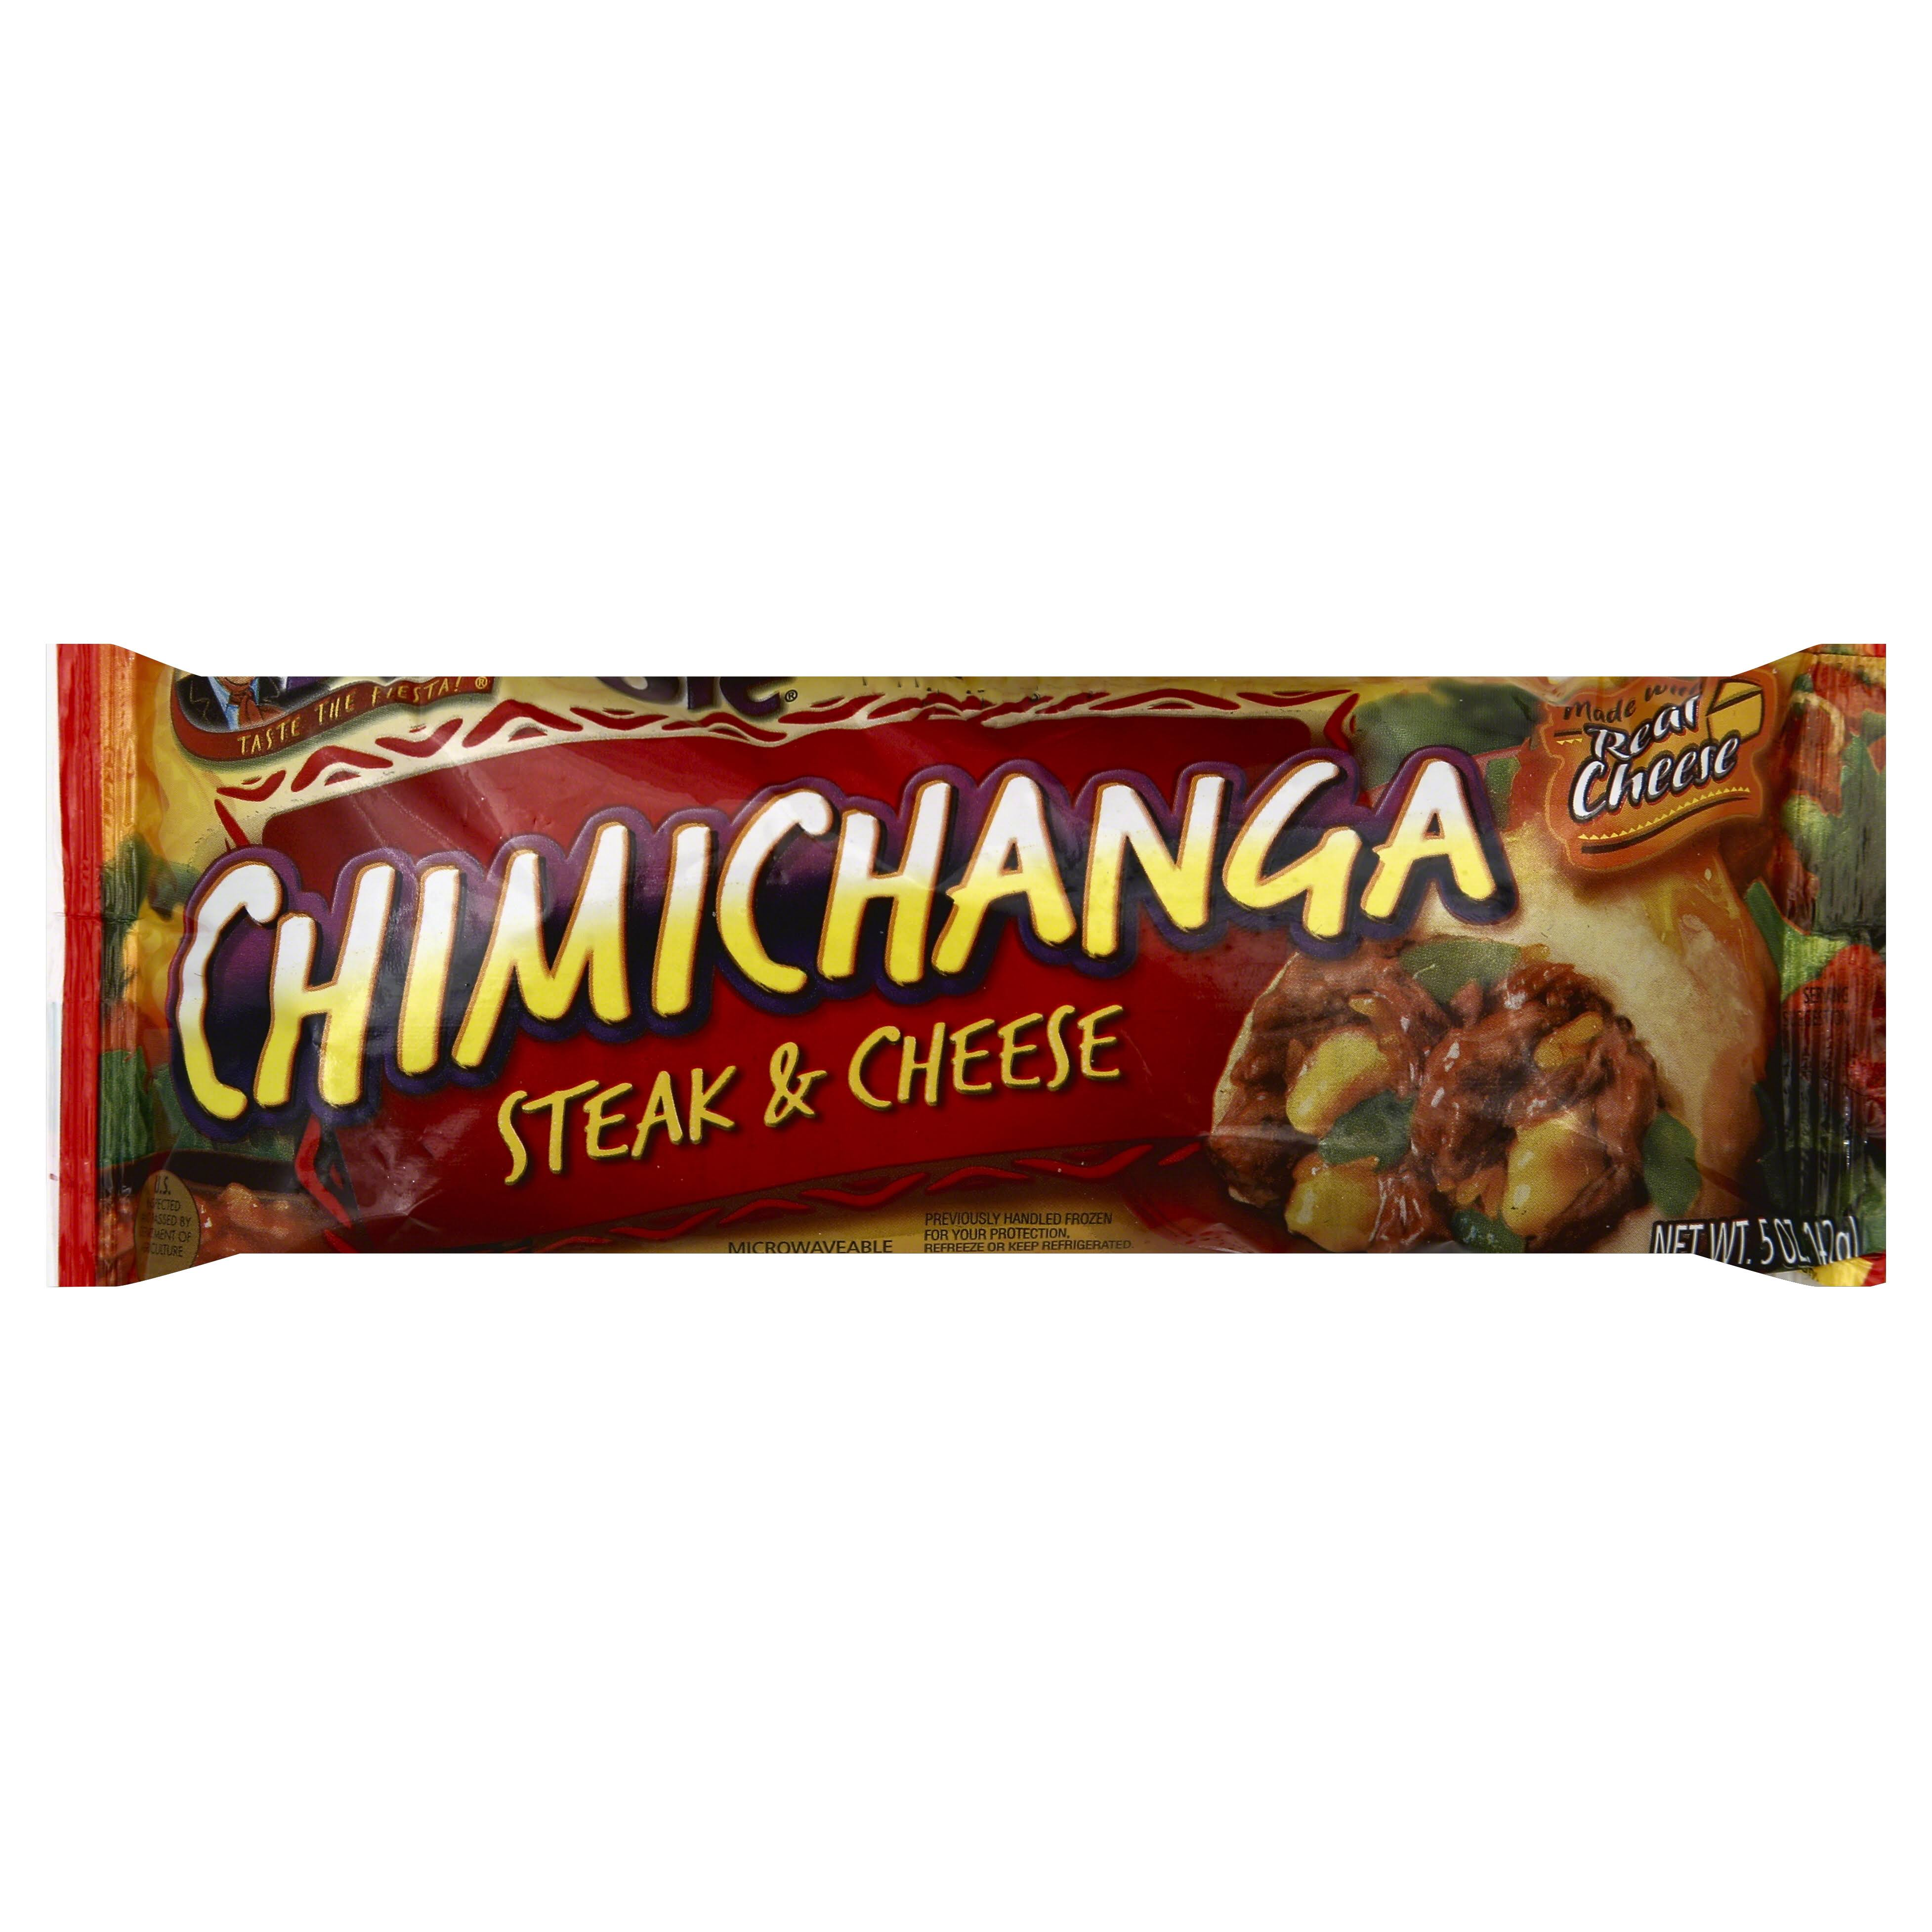 Jose Ole Steak and Cheese Chimichanga - 5oz